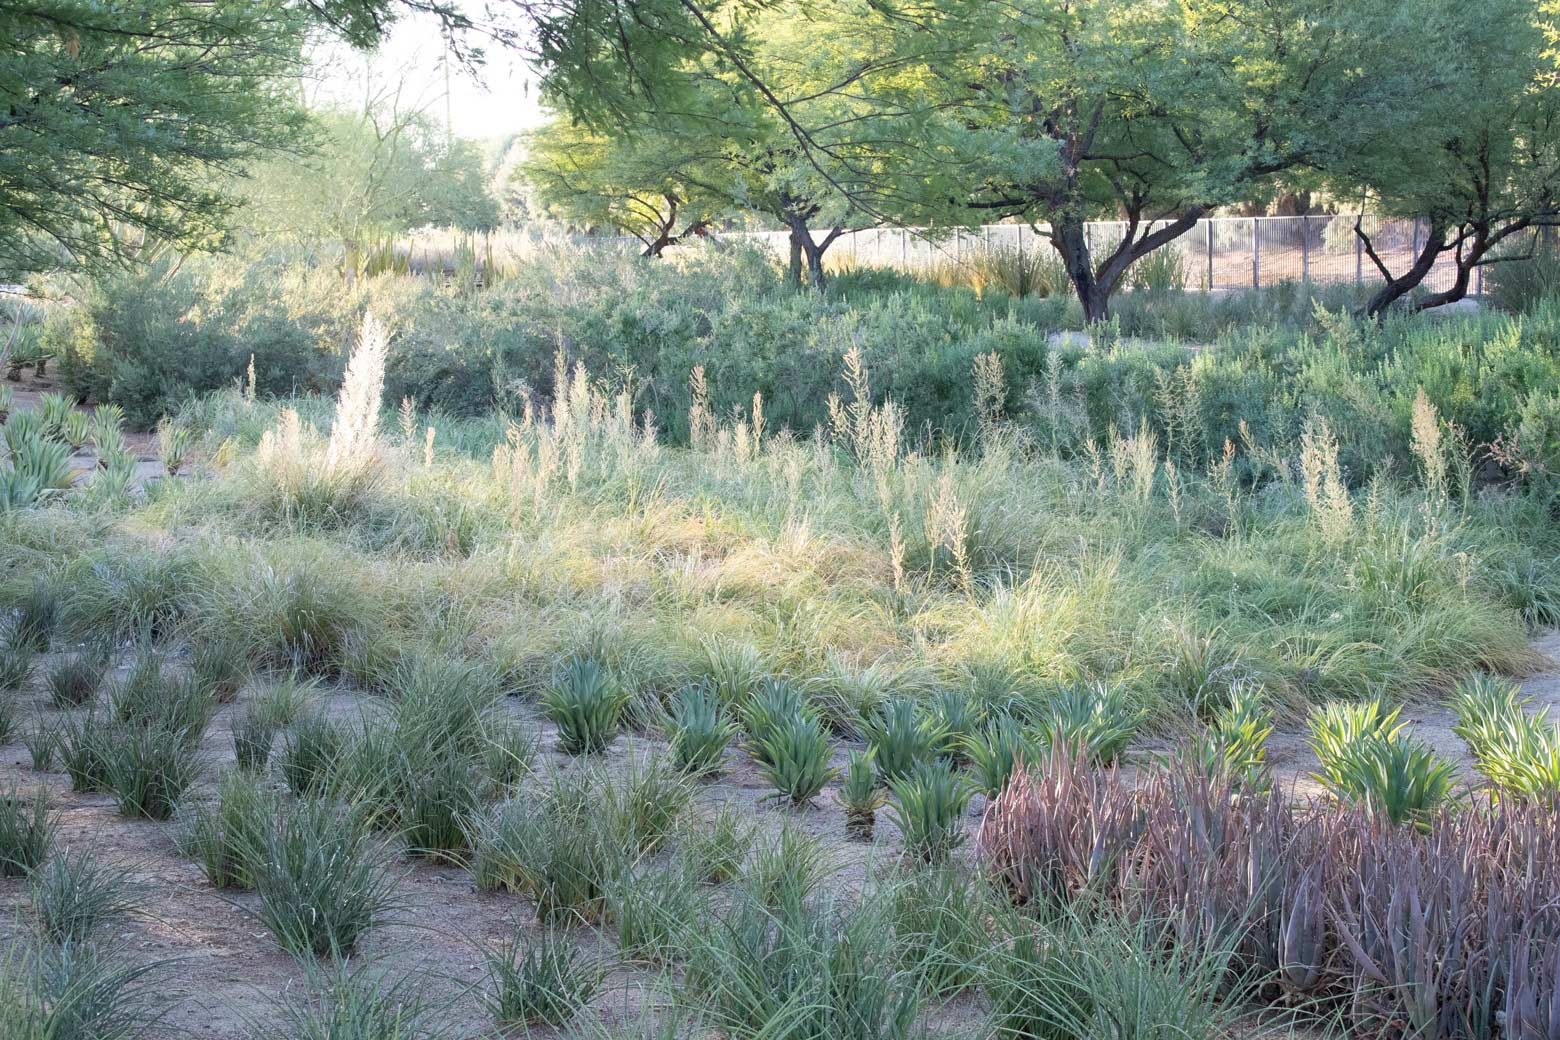 Texas Bear Grass in the retention basin at Sunnylands Center and Gardens.